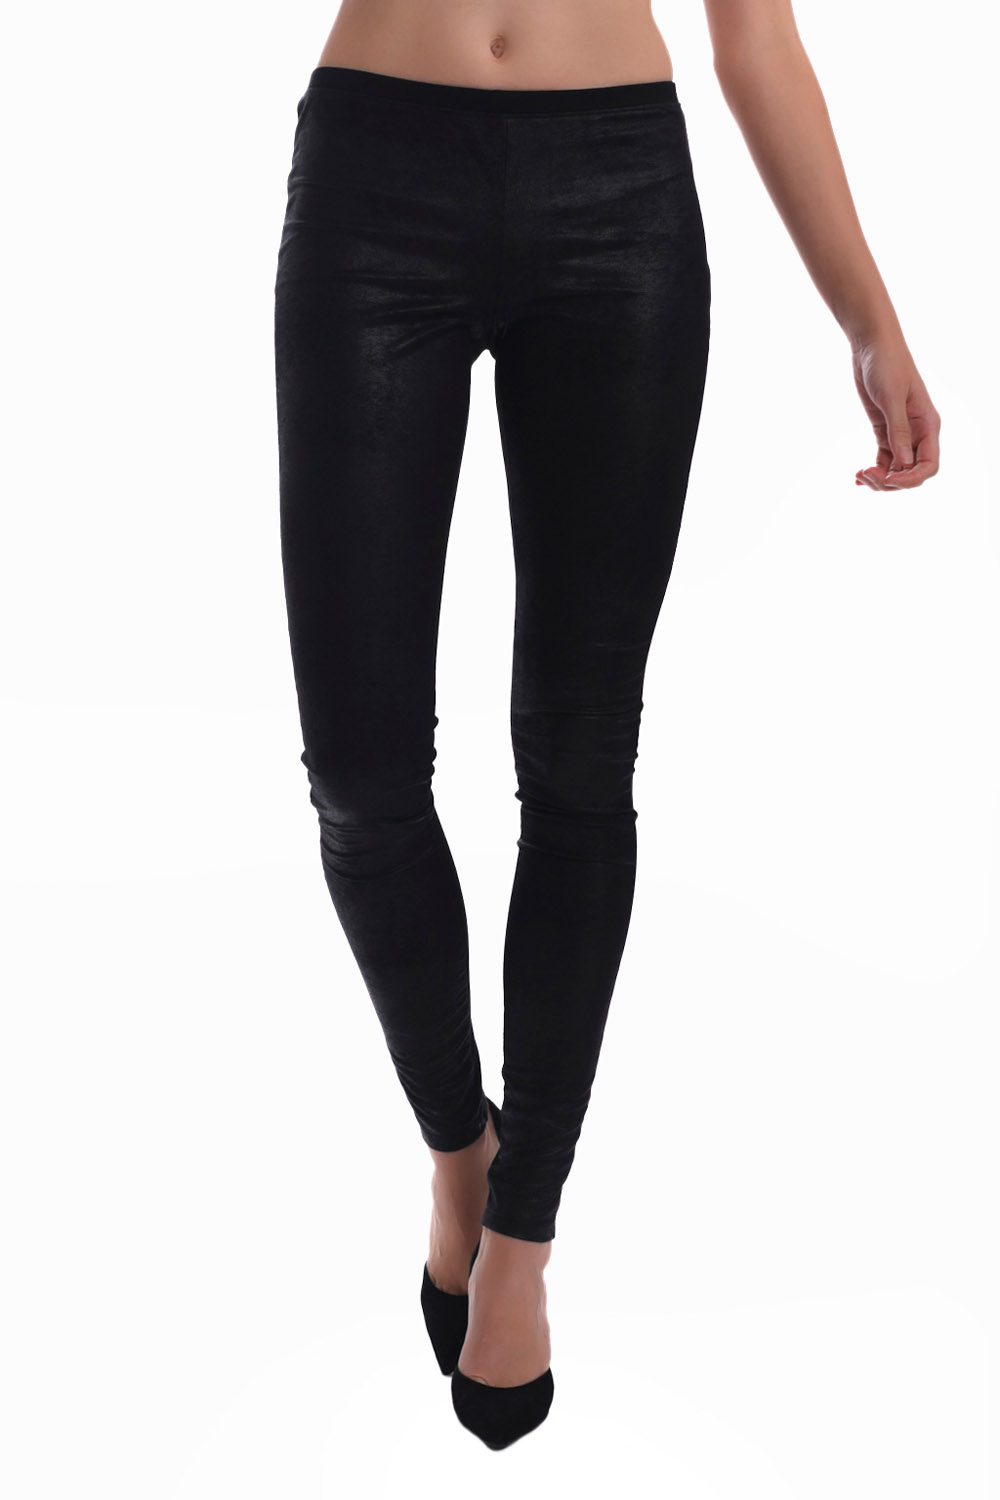 Vpl Spindle Pants In Black Lyst